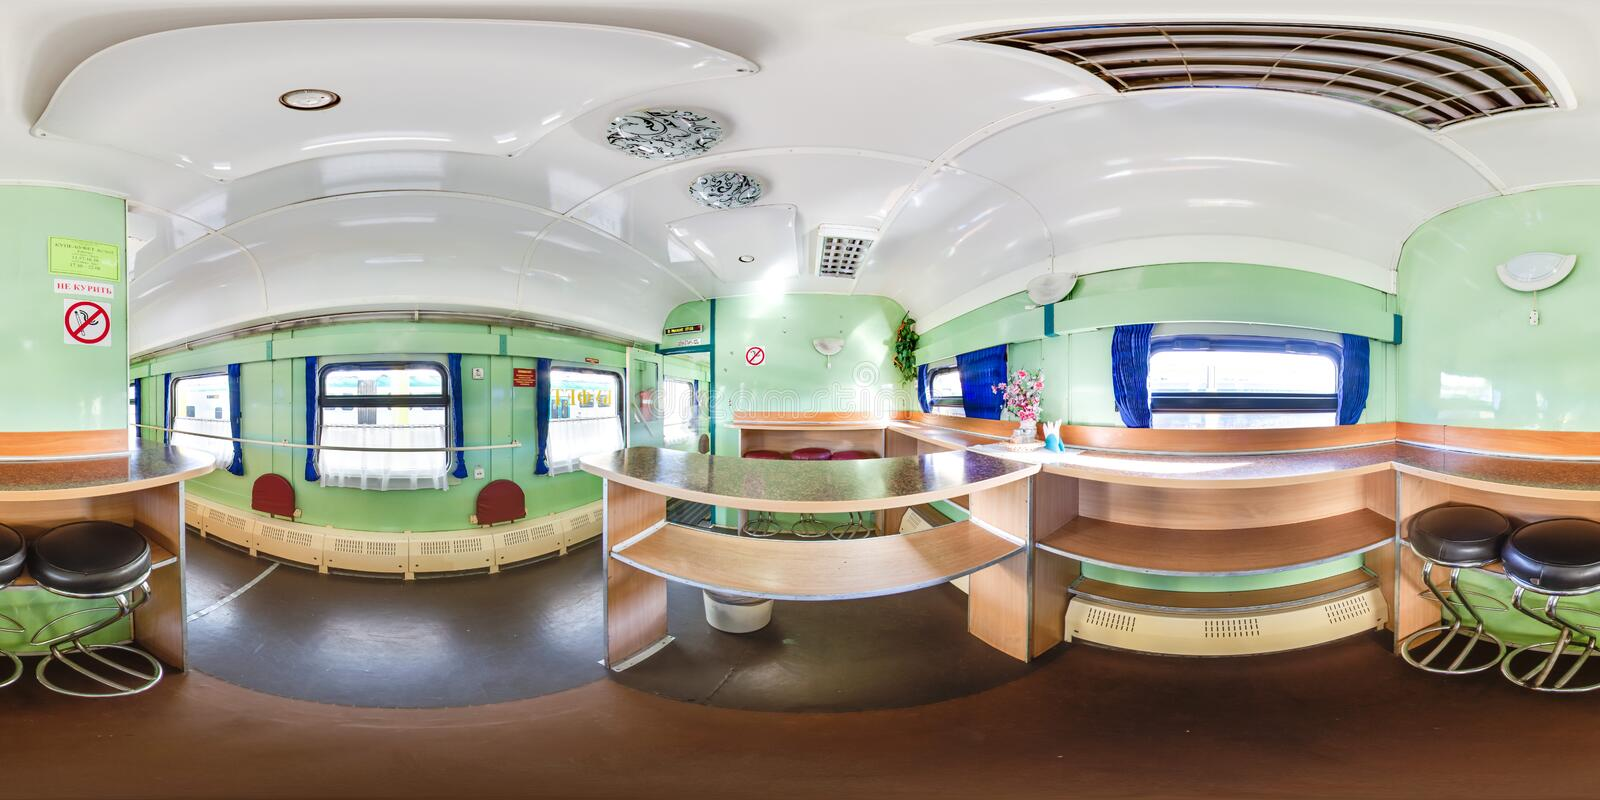 3D spherical panorama with 360 viewing angle. Ready for virtual reality or VR. Full equirectangular projection. Interior of train. Dining car. Spring stock images